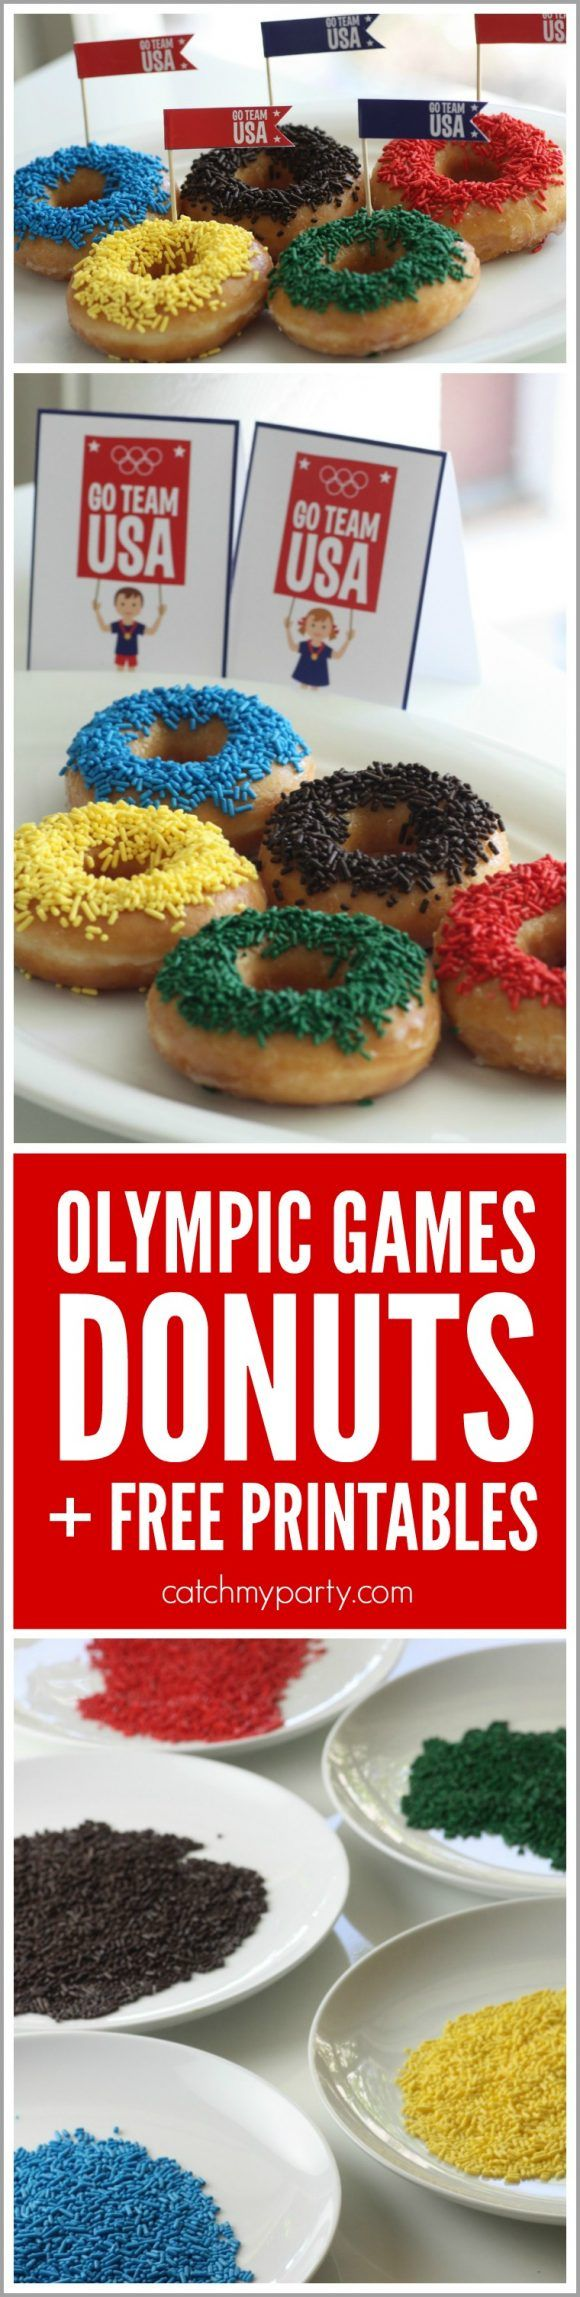 How cute are the Olympic Games donuts! Learn to make them, then clean them up with one sheet of @bounty! Great for your Olympics parties! | CatchMyParty.com #quicktips #ad#